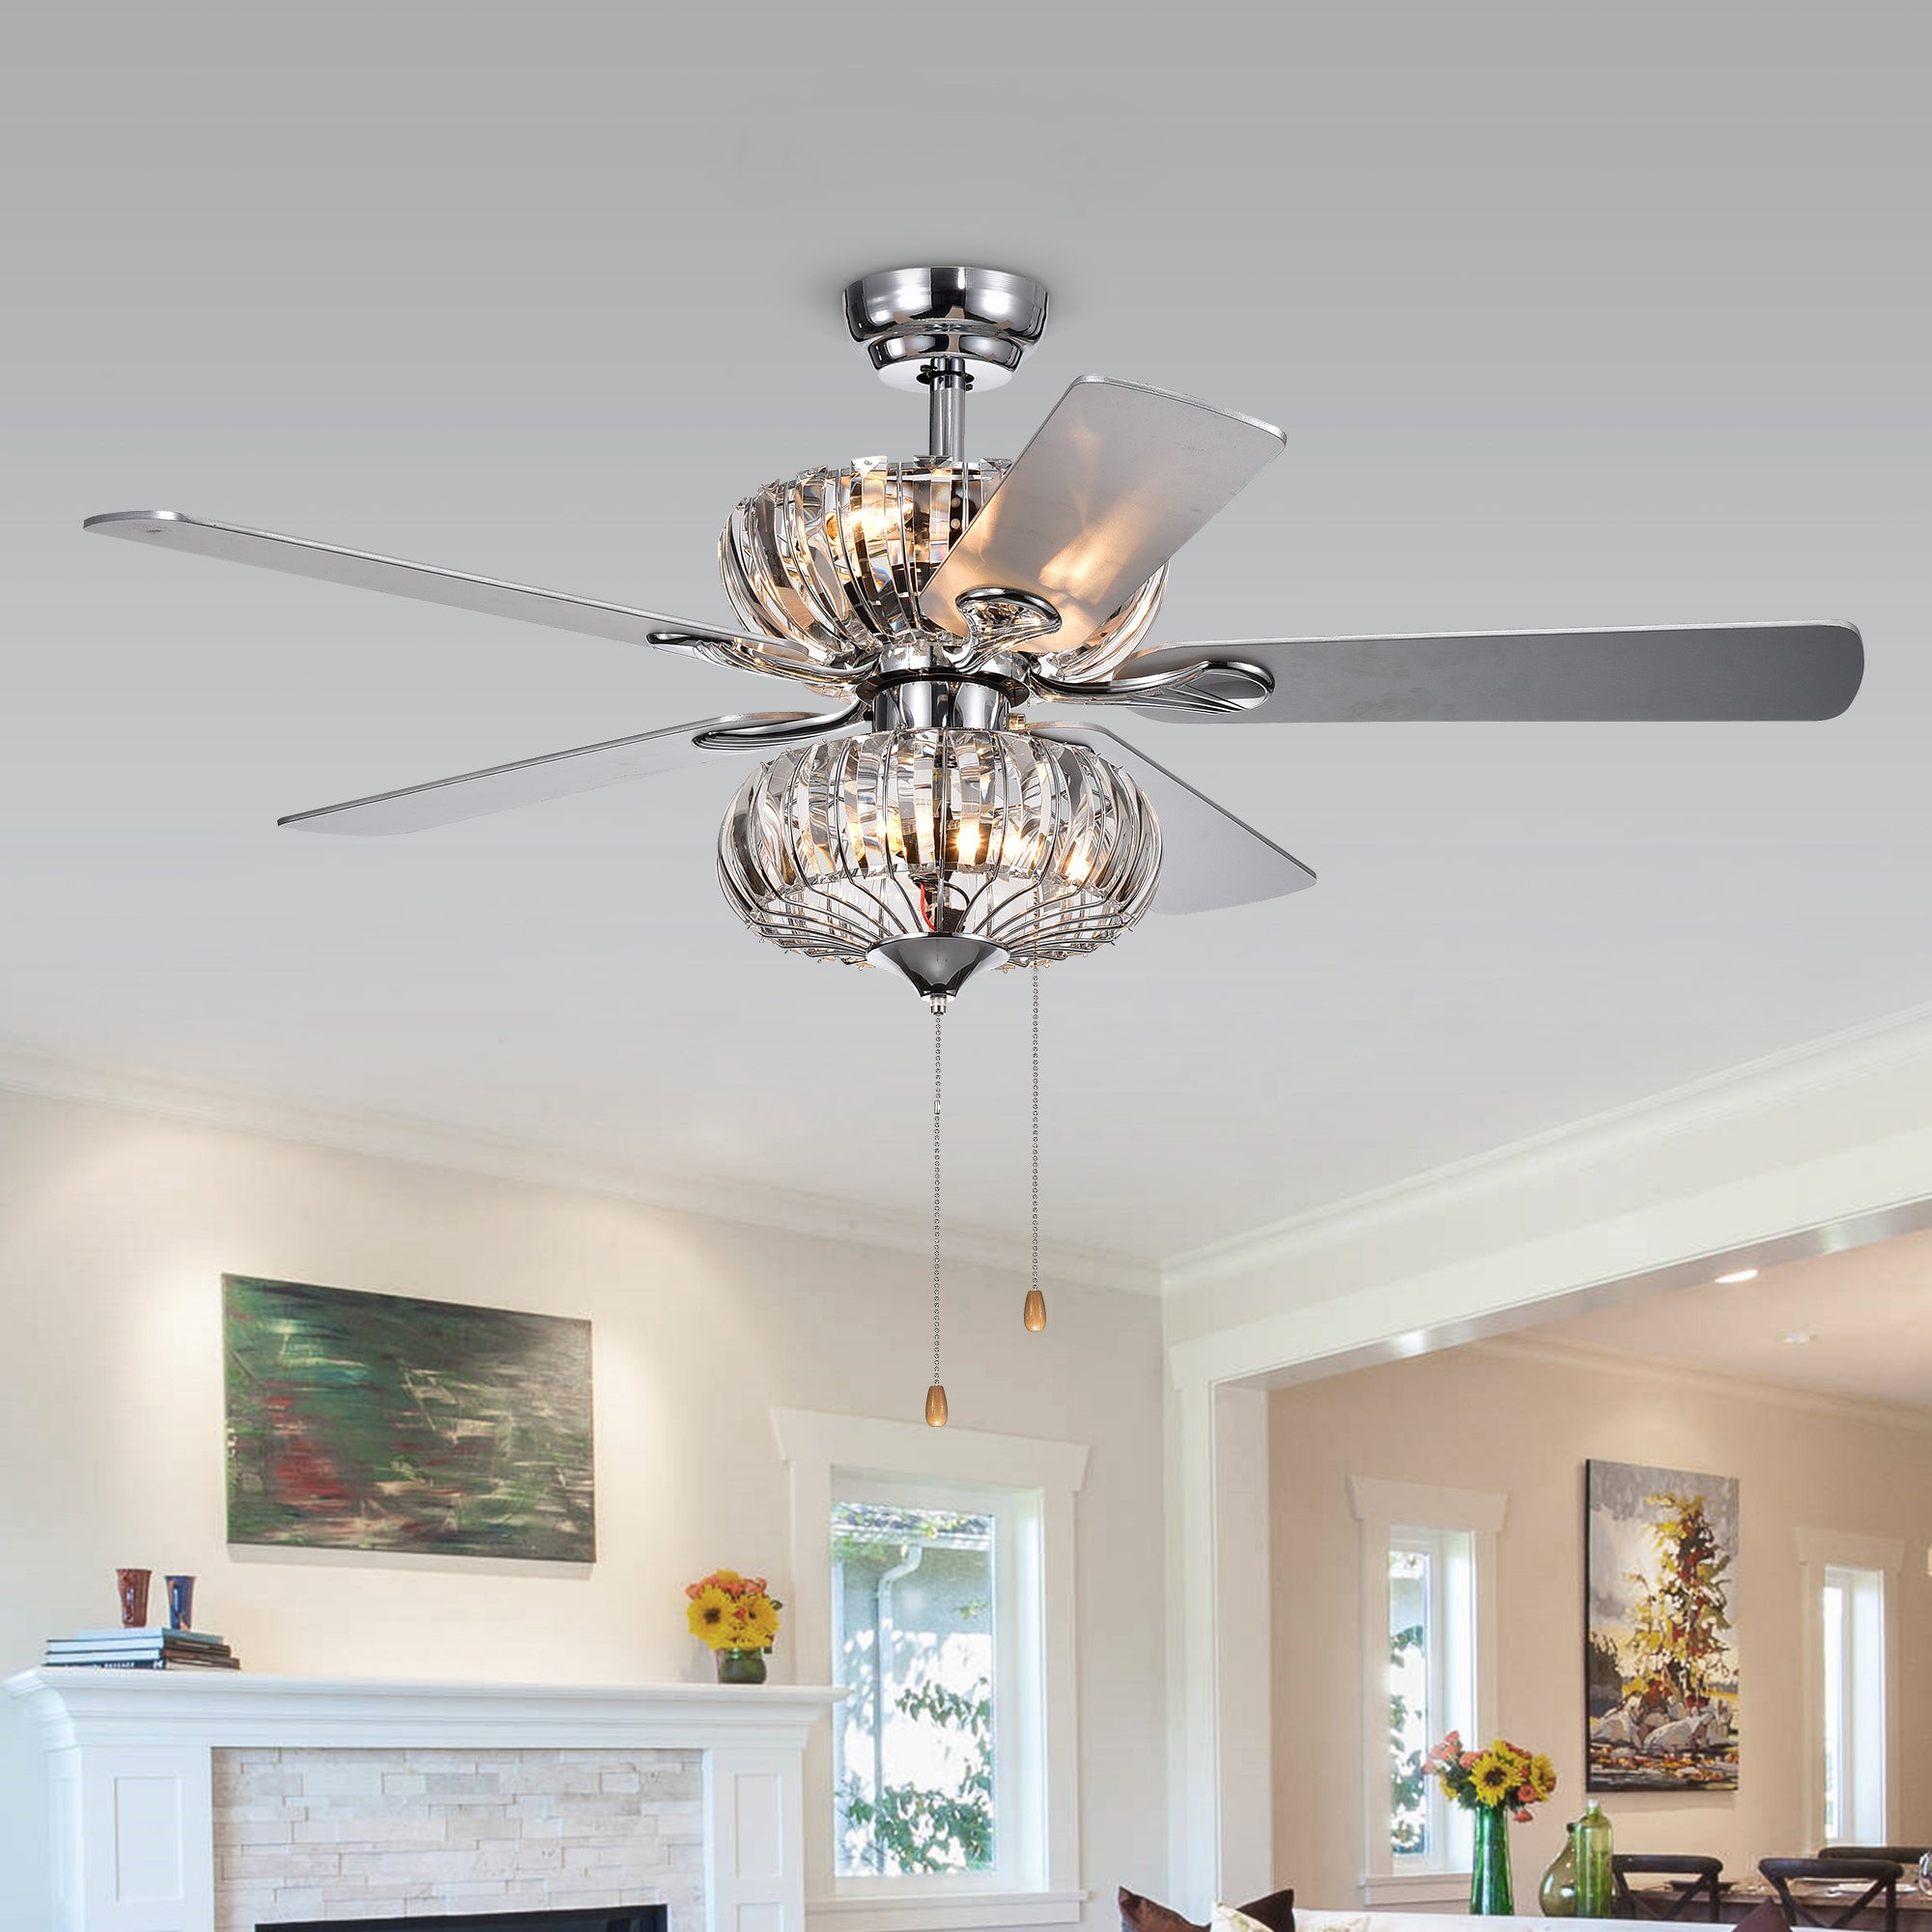 Kyana 6 light Crystal 5 blade 52 inch Chrome Ceiling Fan Remote